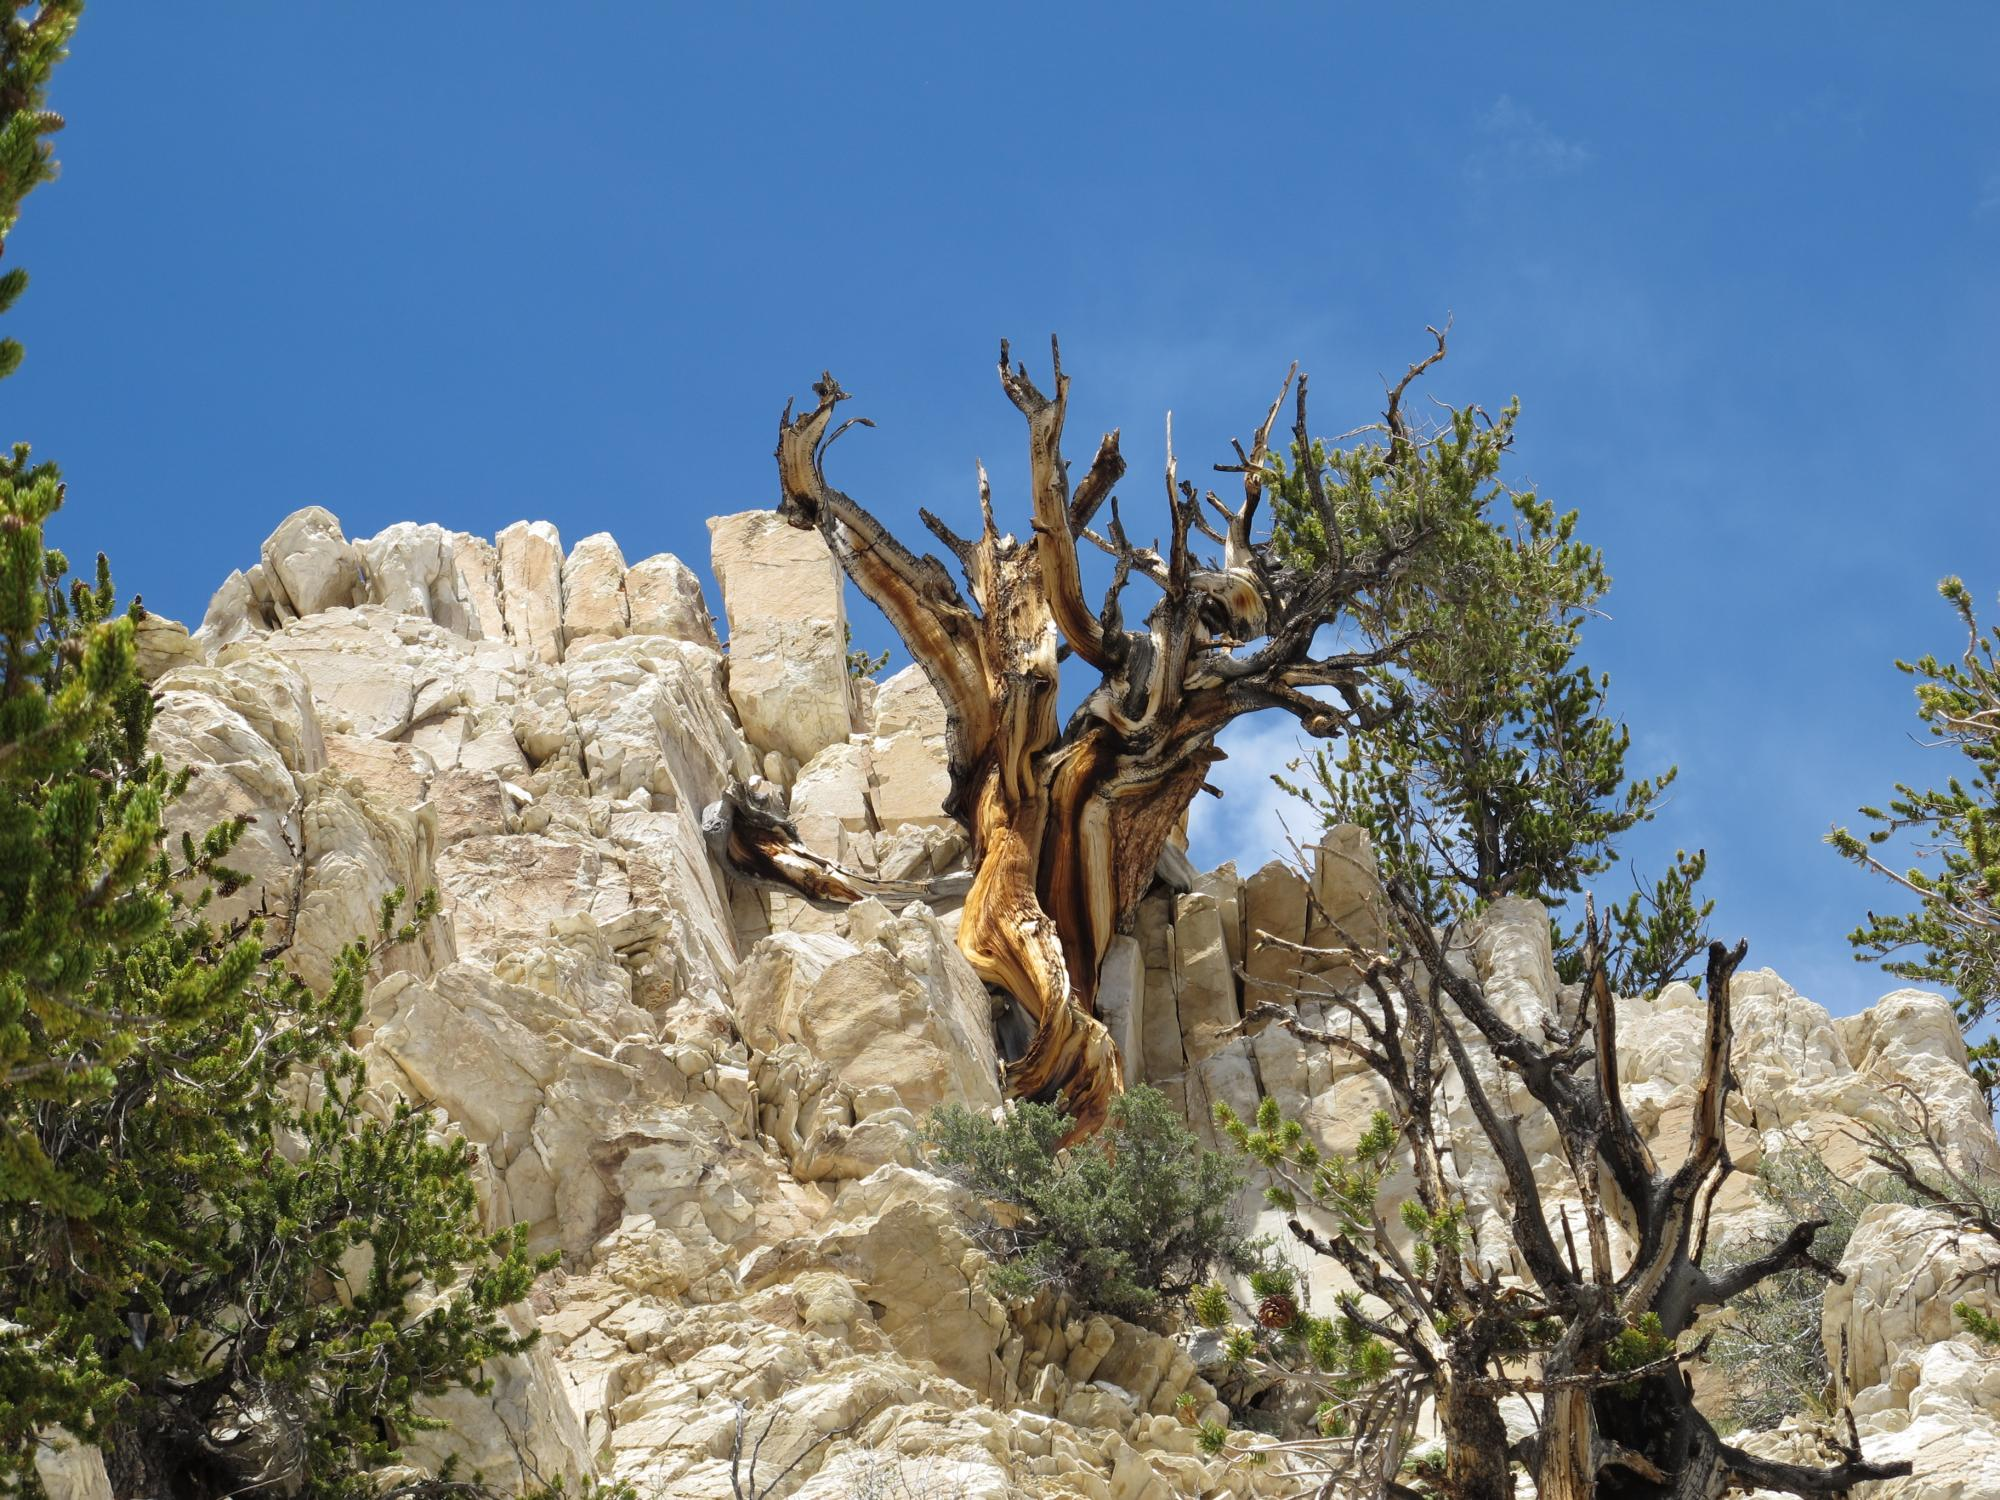 bristlecone pine on rock ledge